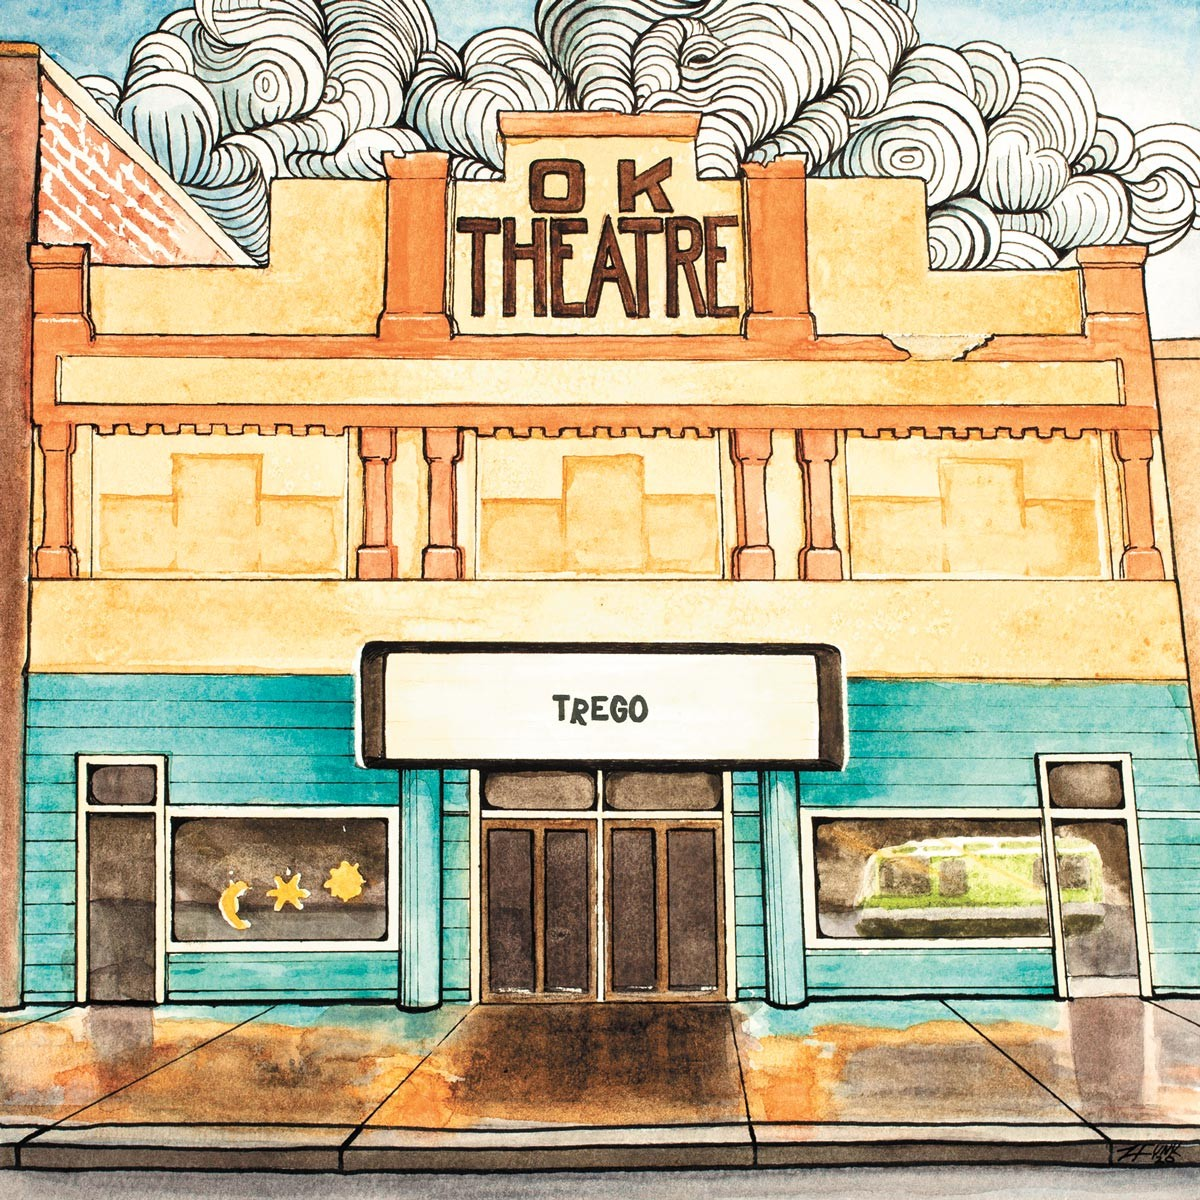 Trego's self-titled debut LP drops Oct. 16.